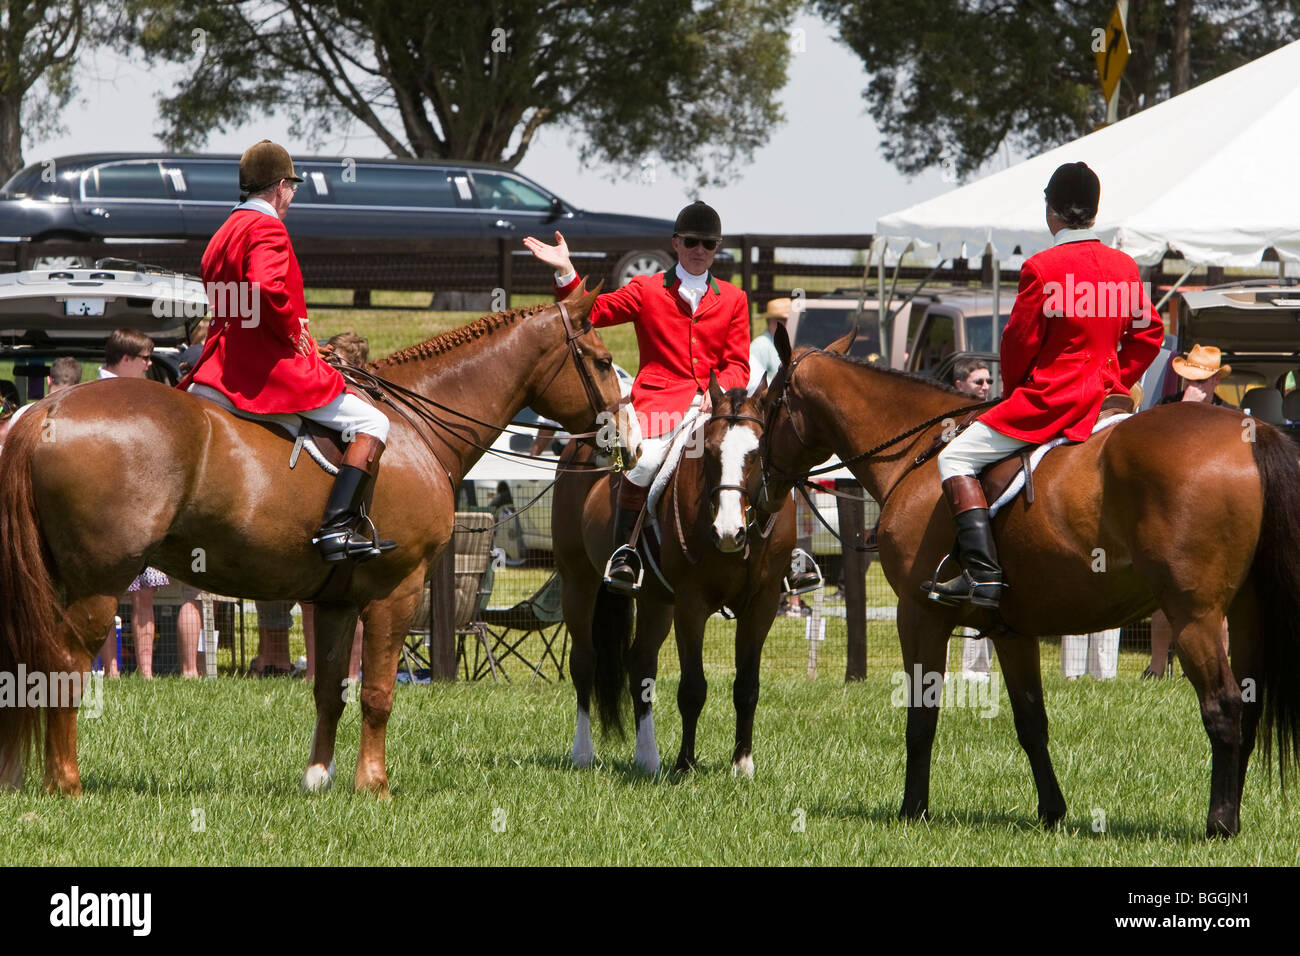 Steeplechase outriders in red coats assemble during the Foxfield Races, Charlottesville, VA, United States of America - Stock Image